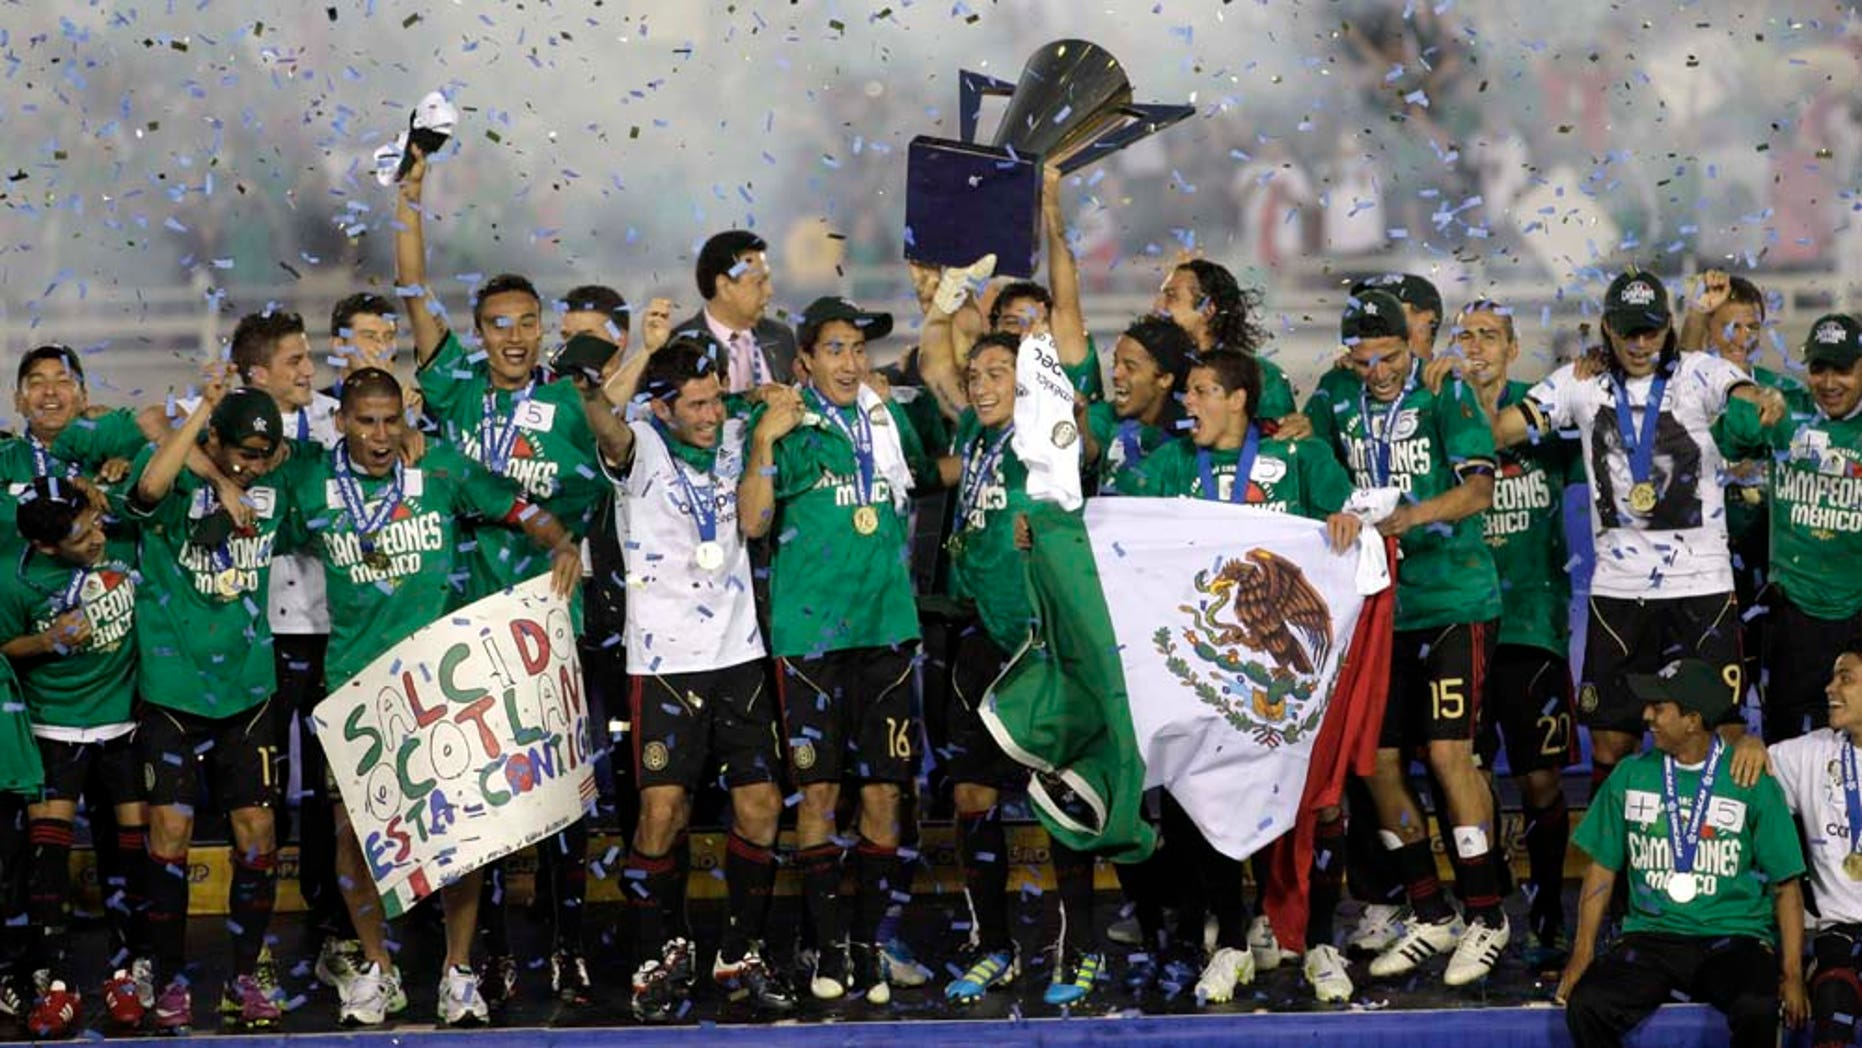 During happier times, El Tri won the CONCACAF Gold Cup. As it enters the Copa América competition, it has to overcome a prostitution scandal that leaves it without some of its best players.